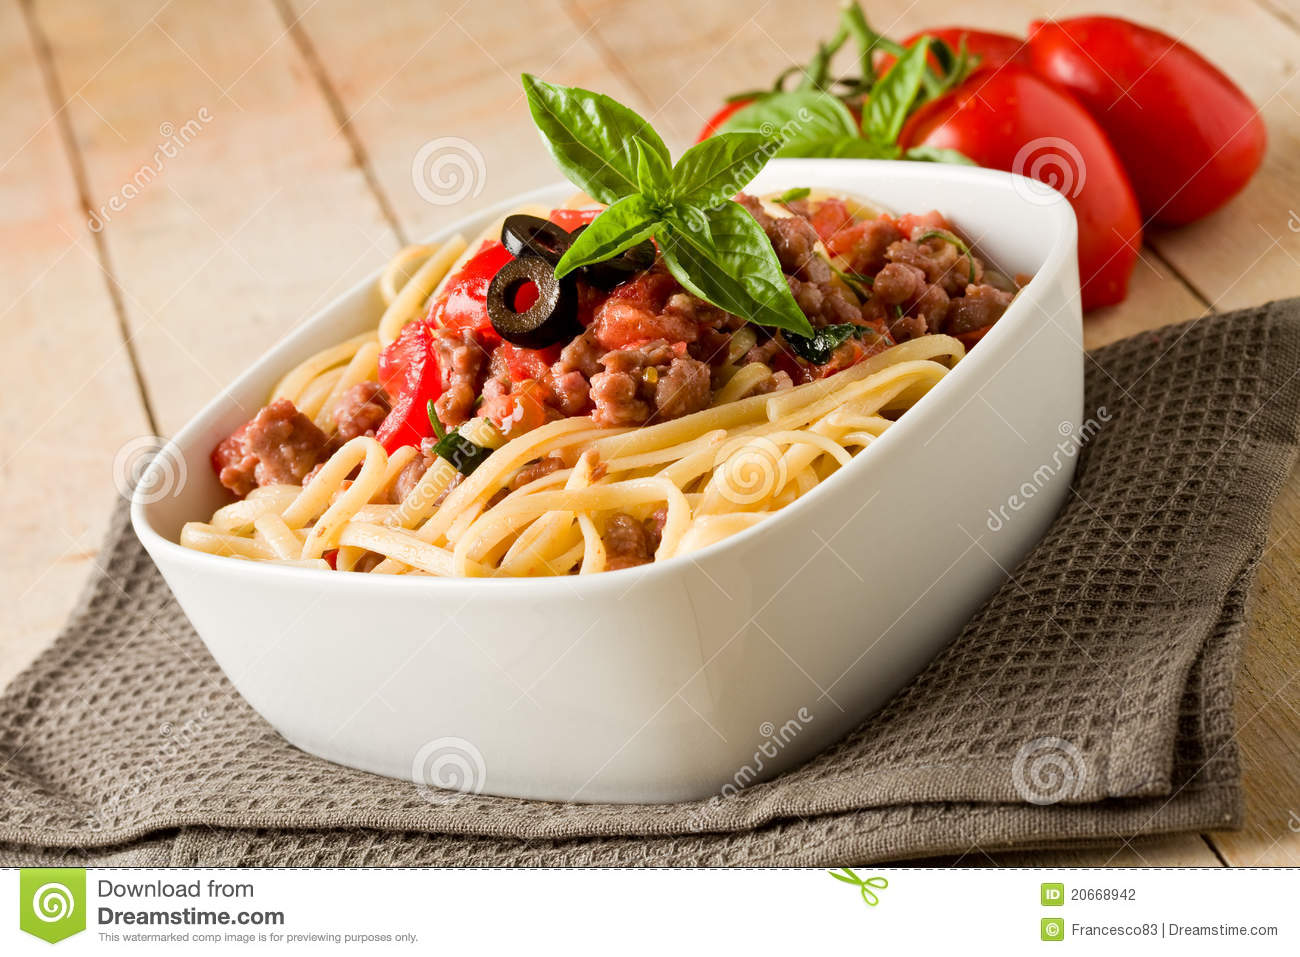 More similar stock images of ` Pasta with italian sausage meat sauce `